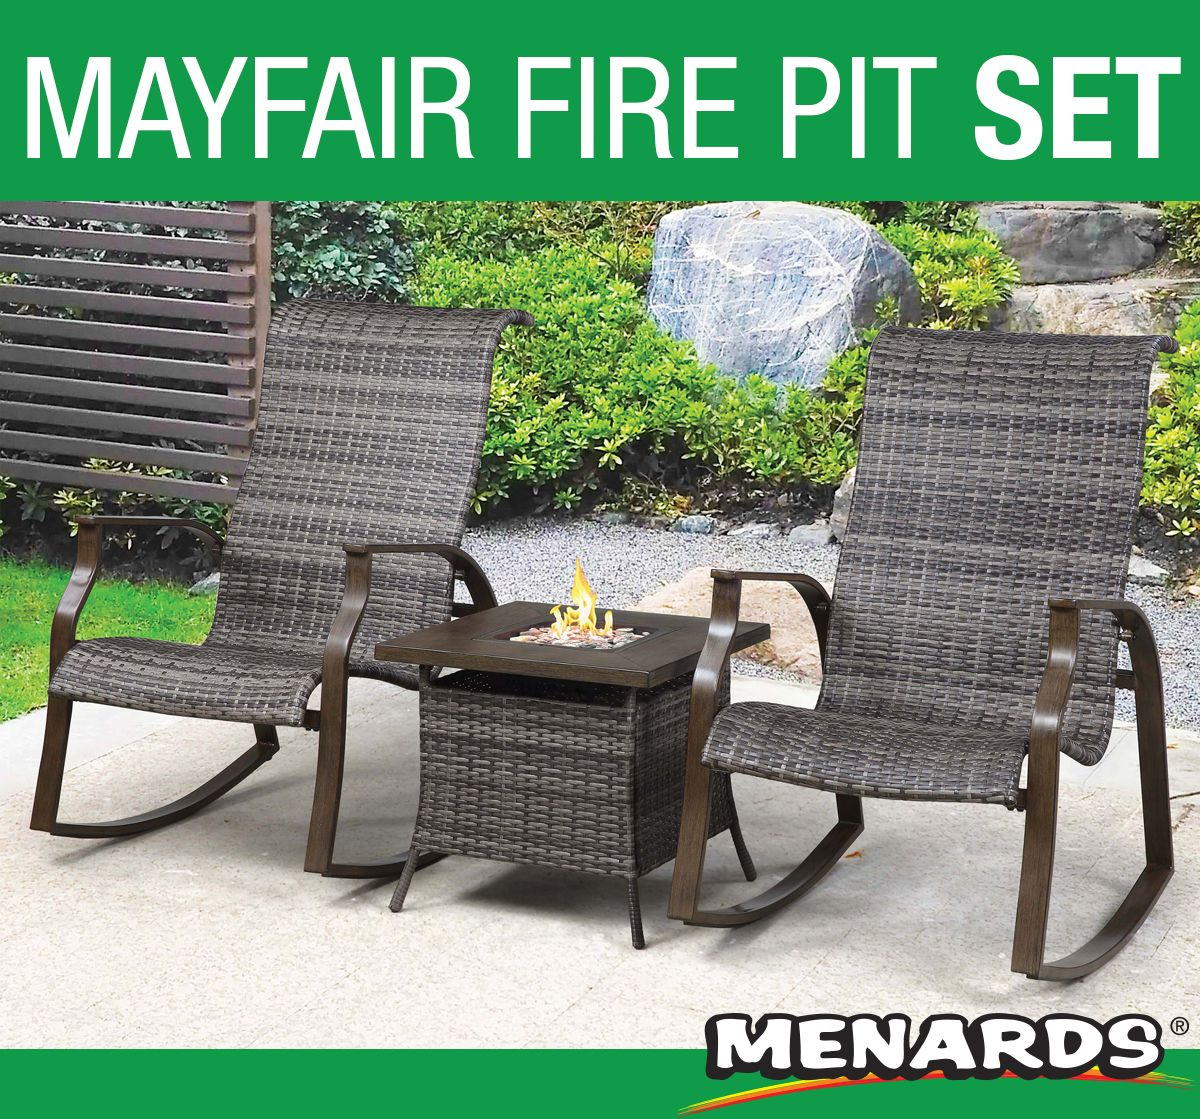 The Backyard Creations Mayfair 3 Piece Fire Pit Chat Set Is Perfect For Any Location The No F Patio Furniture Collection Fire Pit Chat Set Backyard Creations